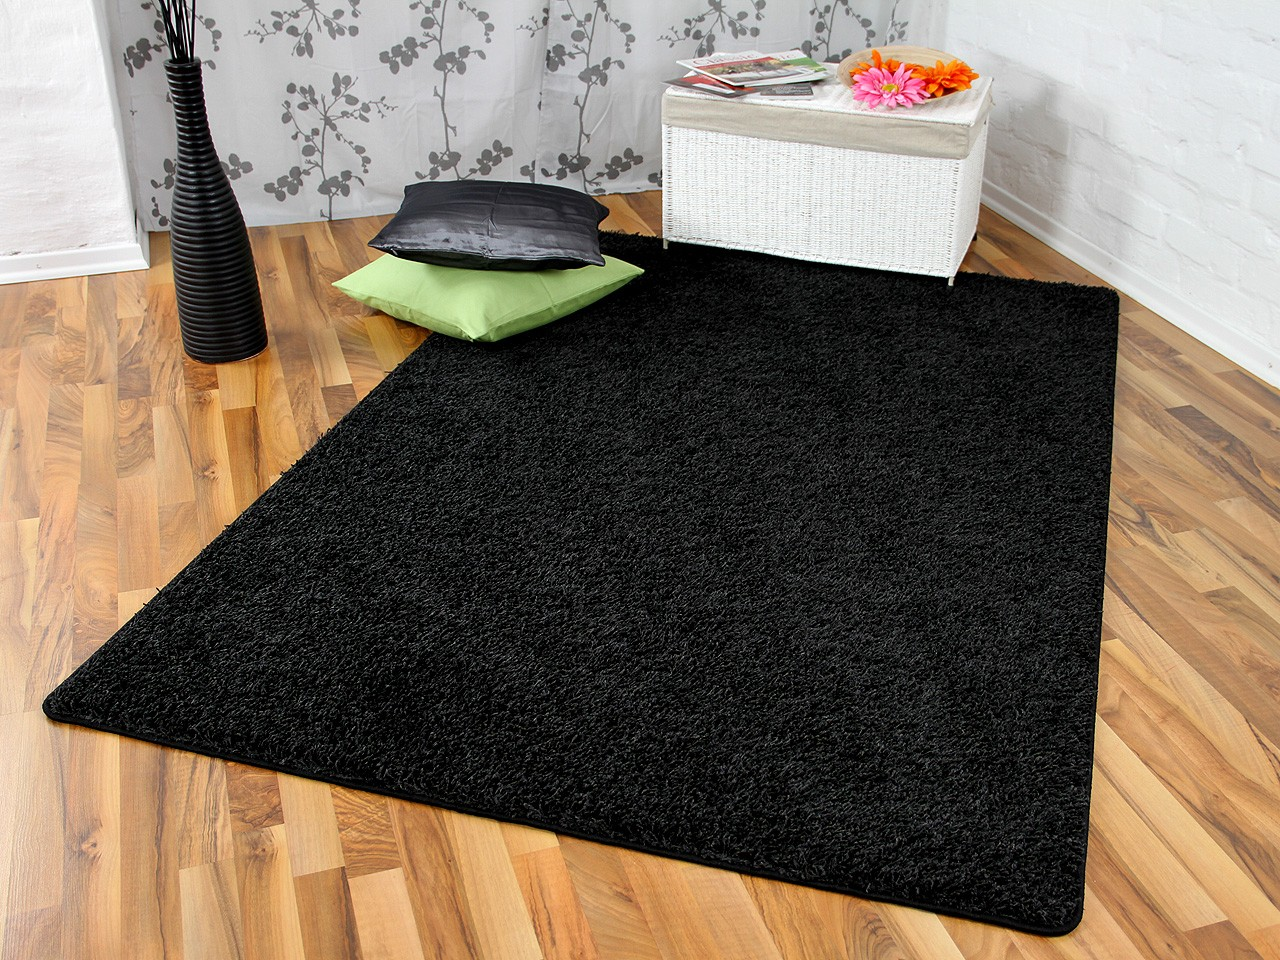 hochflor langflor teppich shaggy nova schwarz sonderaktion teppiche hochflor langflor teppiche. Black Bedroom Furniture Sets. Home Design Ideas